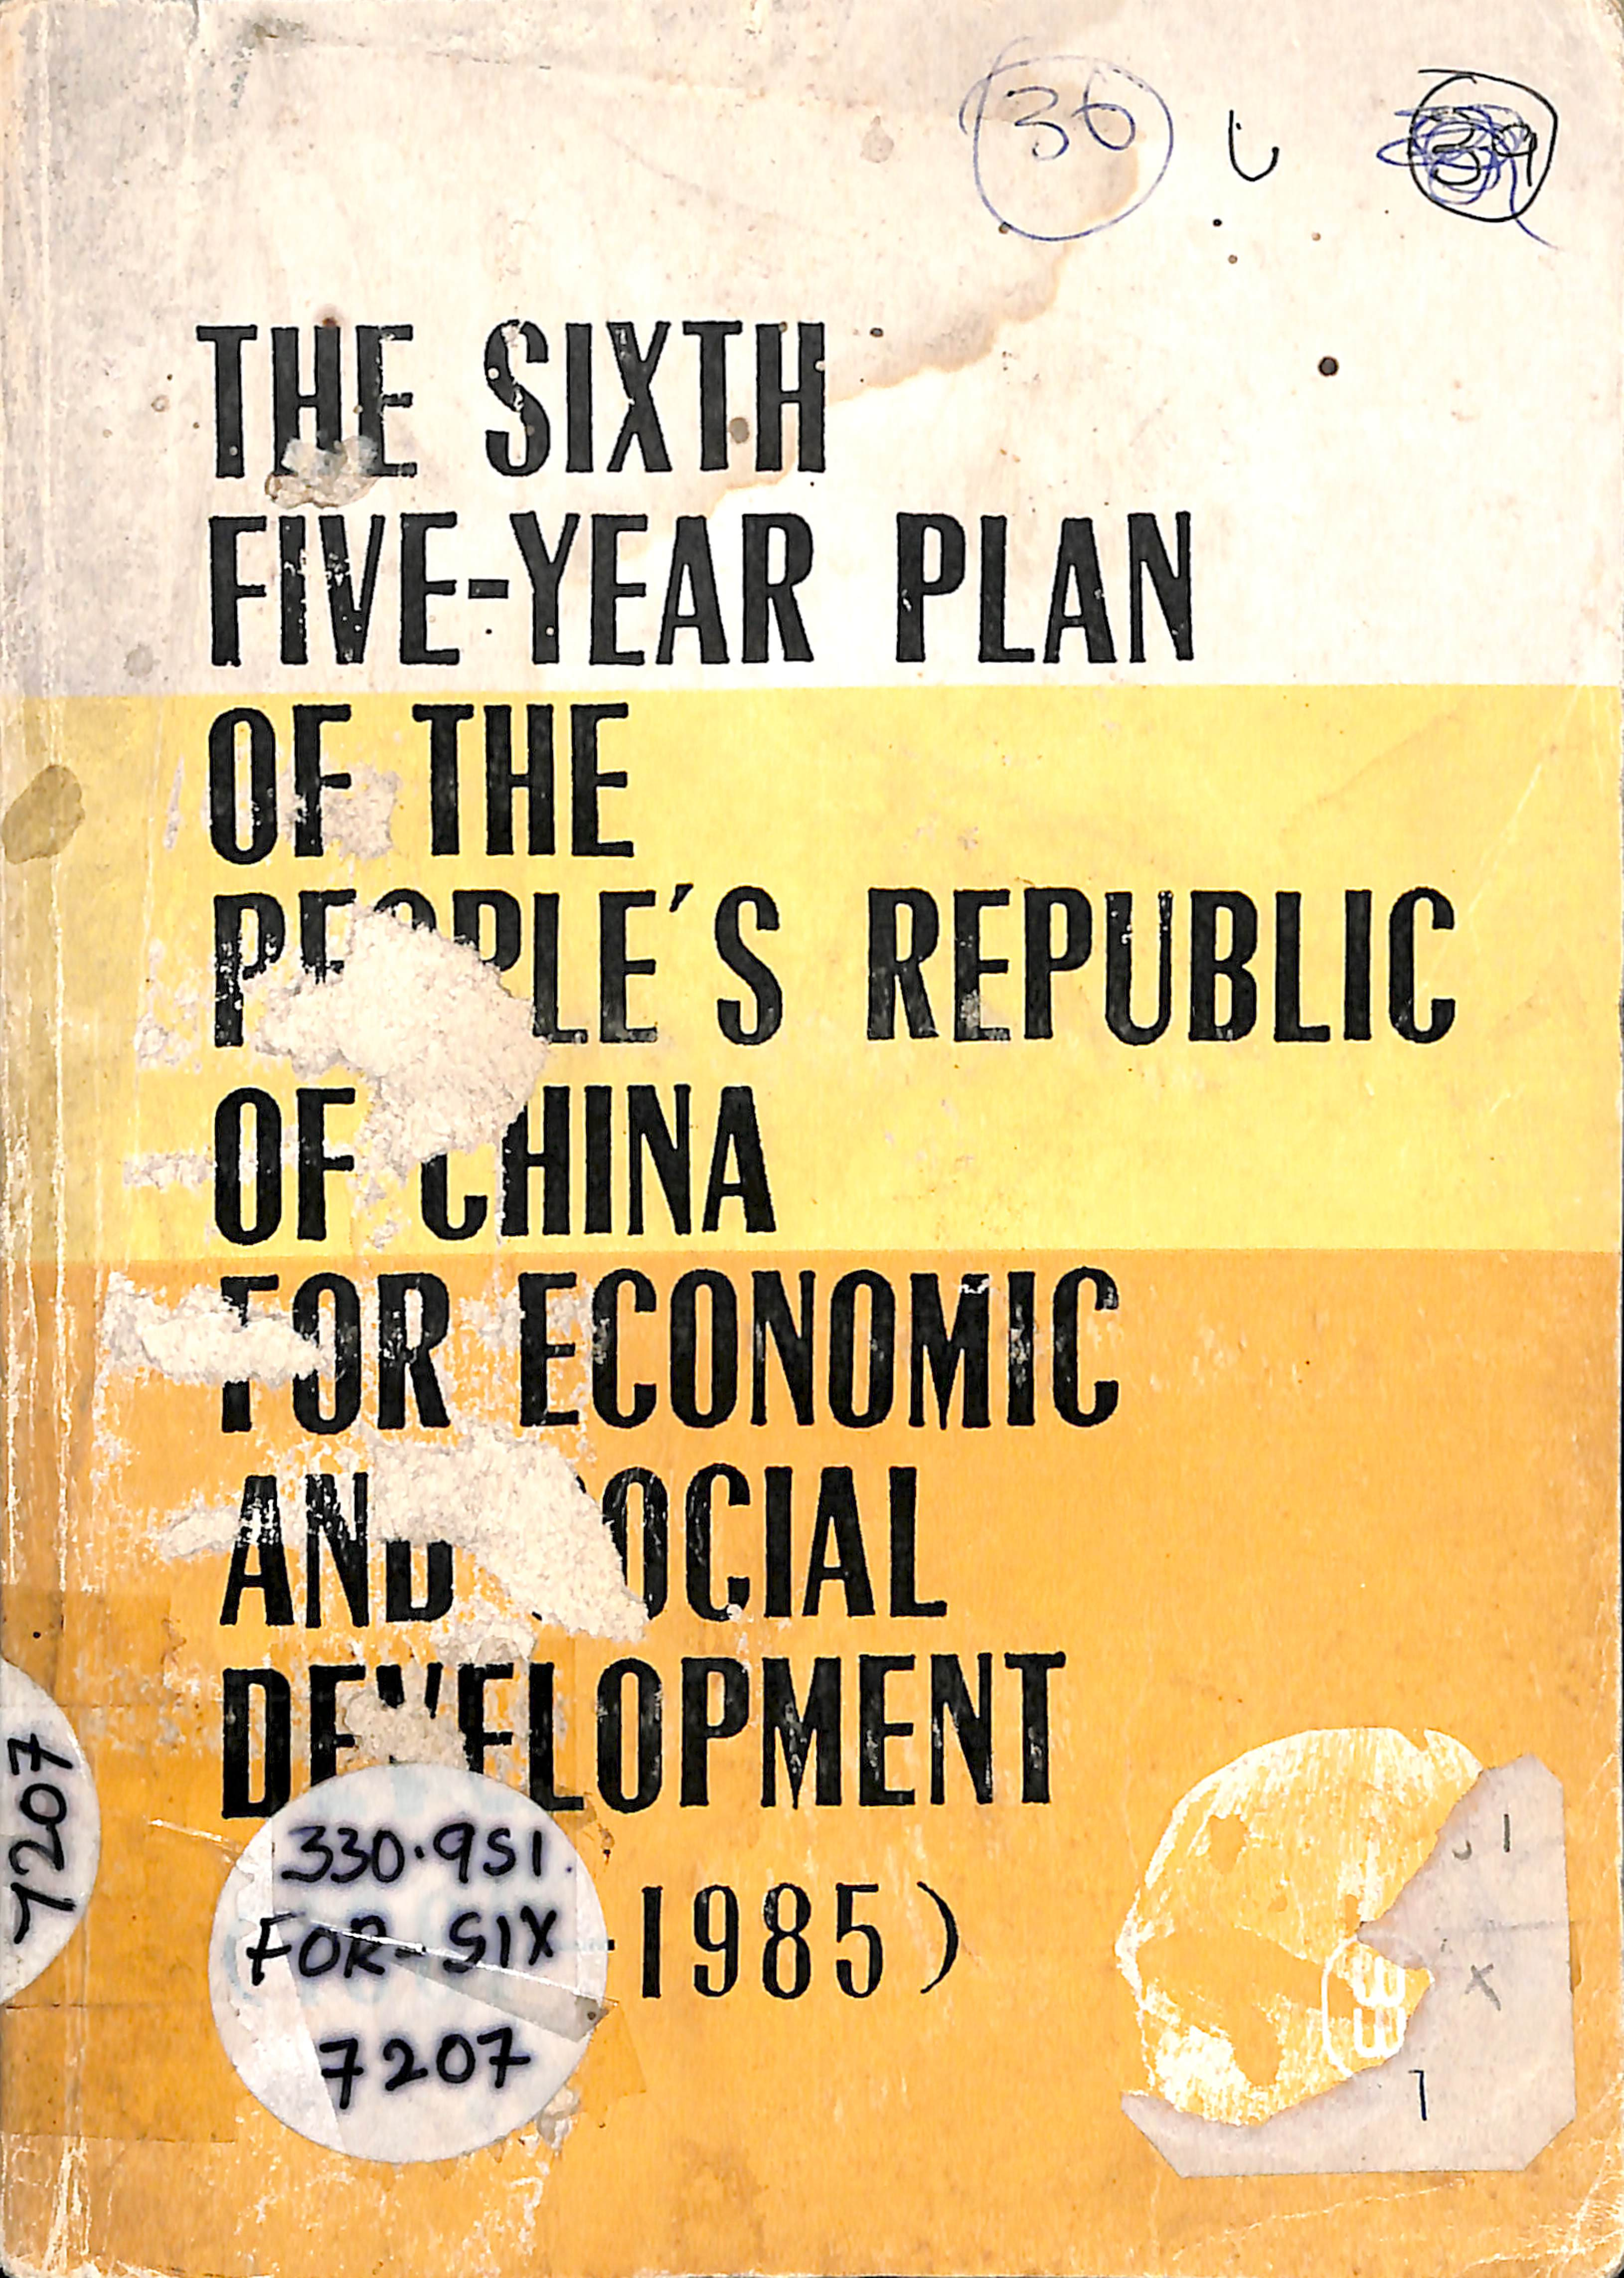 The 6th 5 Year Plan of the People ,Republic of China